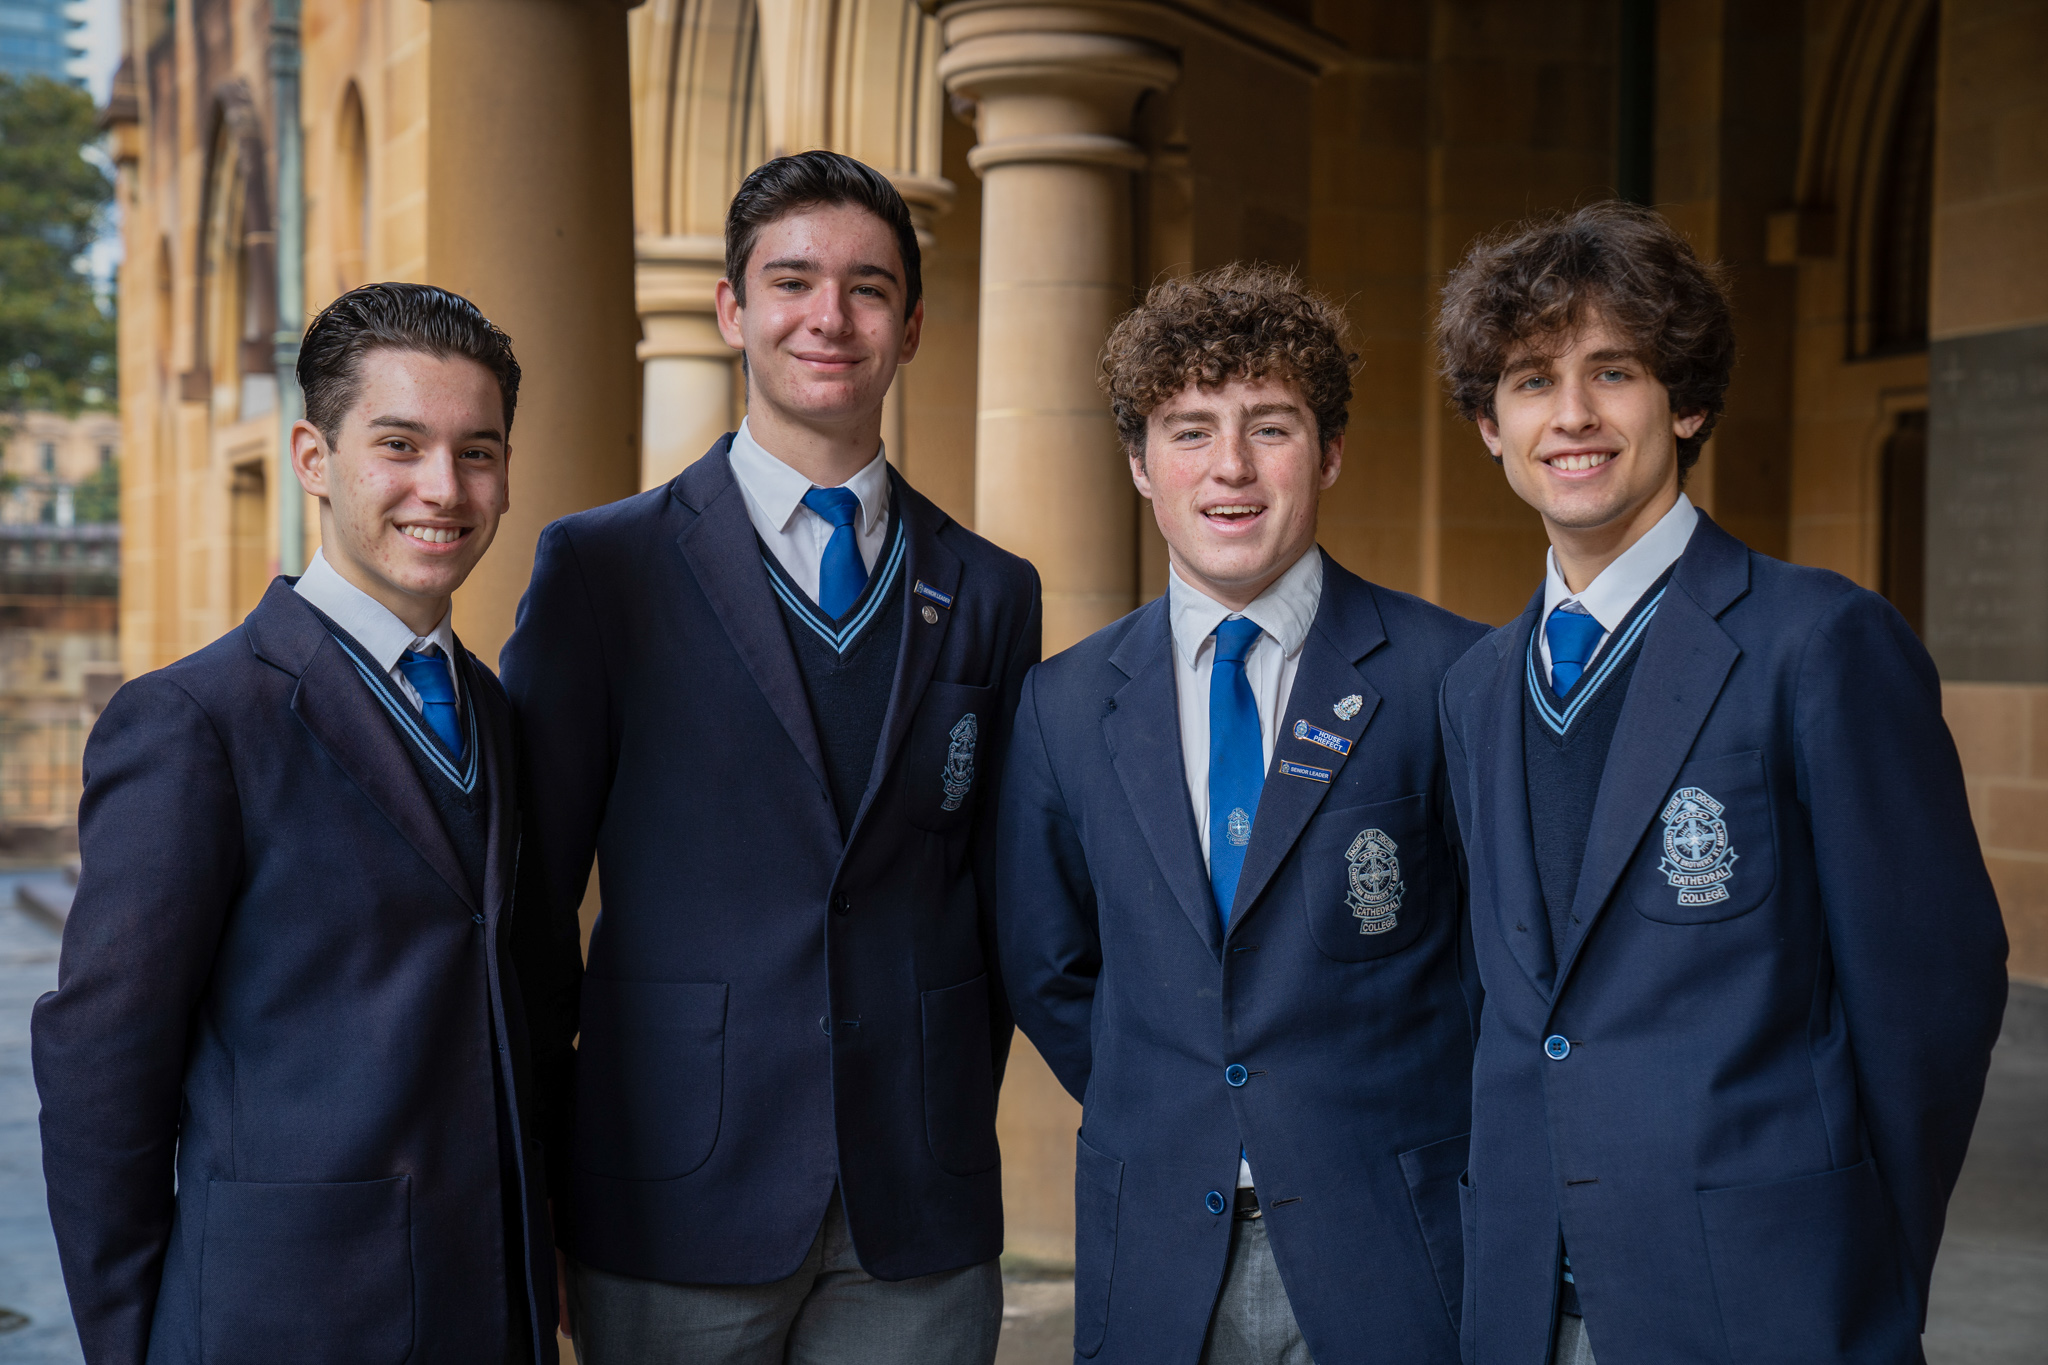 St Mary's Cathedral College year 12 students and choir scholars (from left) Marciano Flammia, Antonio Guarino, Reilly Bashall, and Dylan Ford. Photo - Kitty Beale